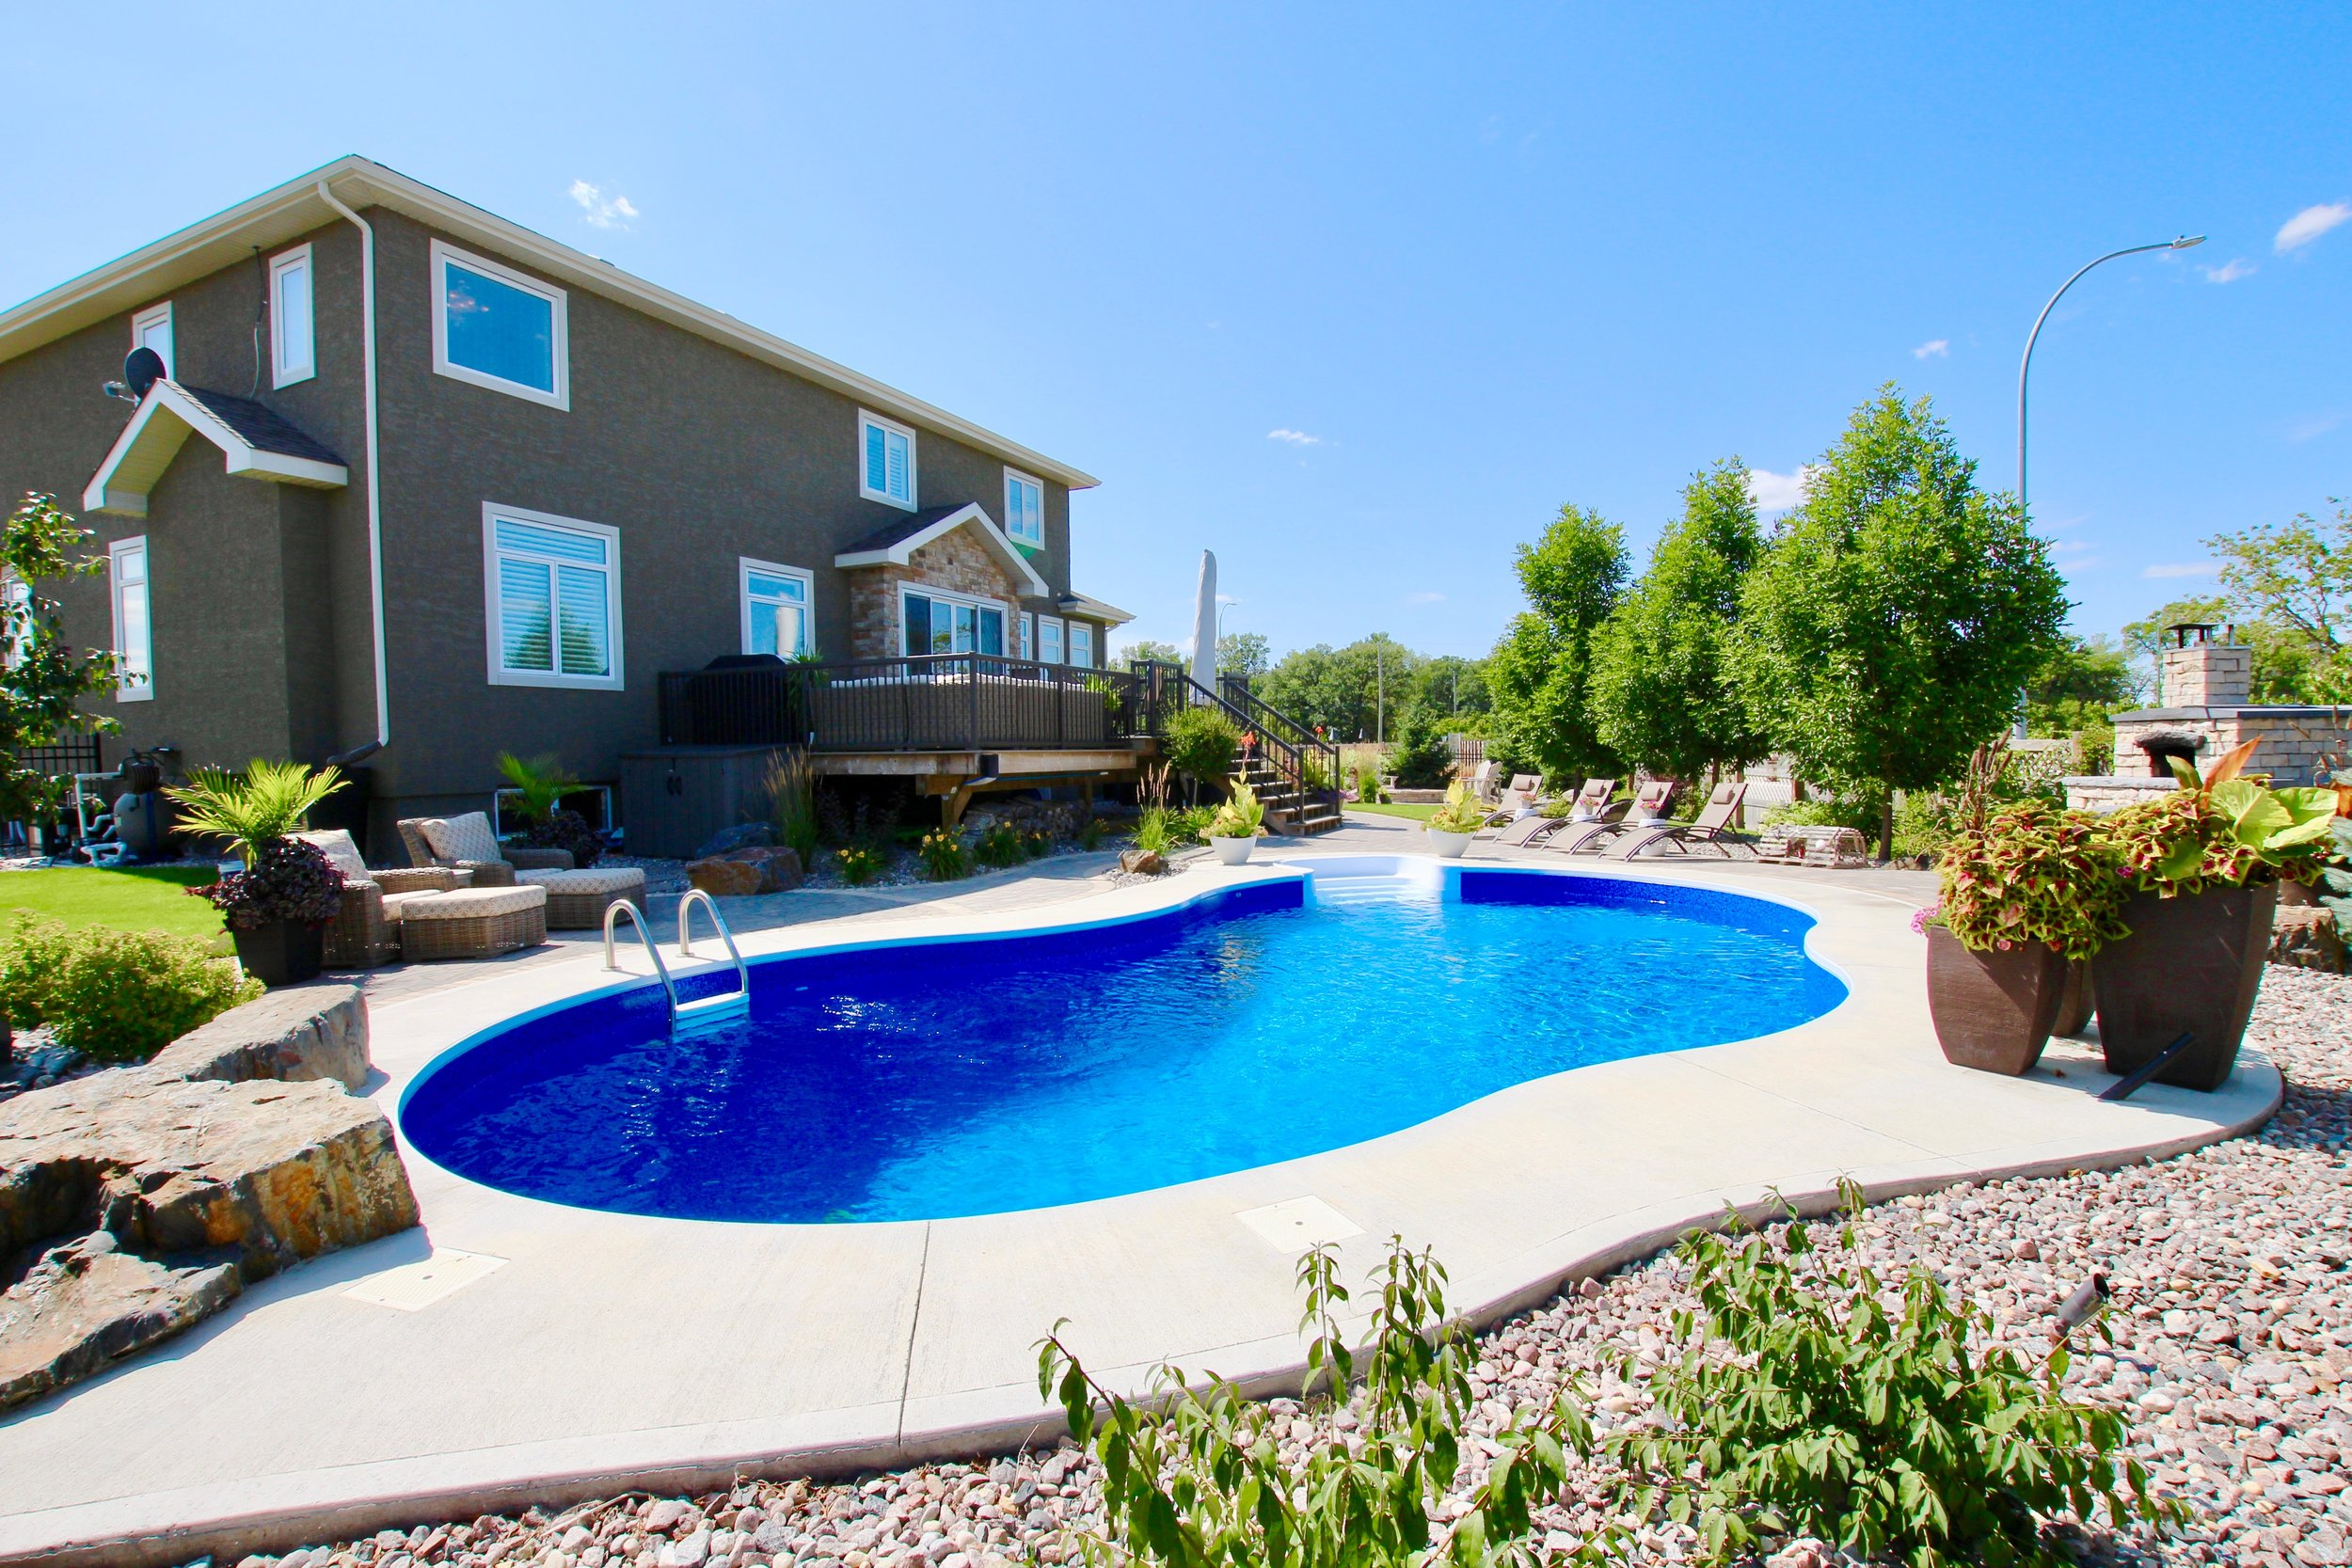 2821 SQFT - BUILT IN 2014 / CREEK VIEW / PIE LOT / IN-GROUND POOL / 4BRS / 3 BTH / LANDSCAPED